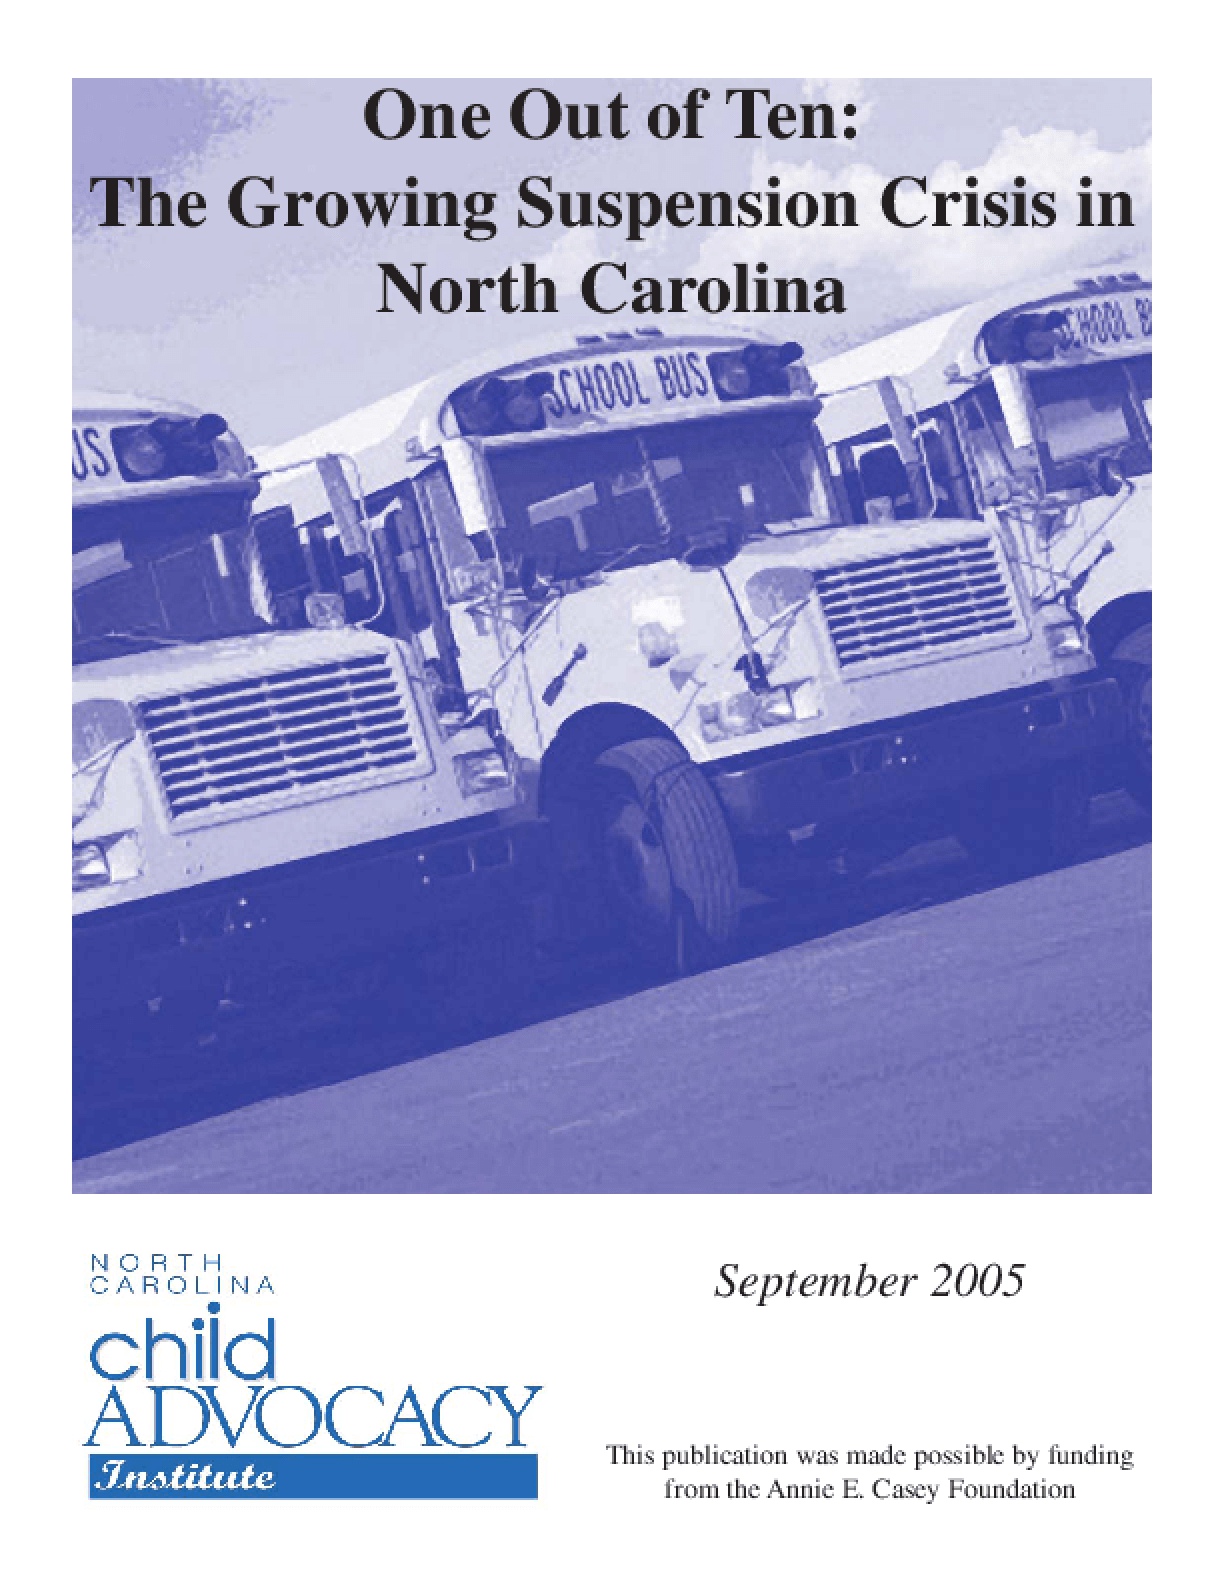 One Out of Ten: The Growing Suspension Crisis in North Carolina